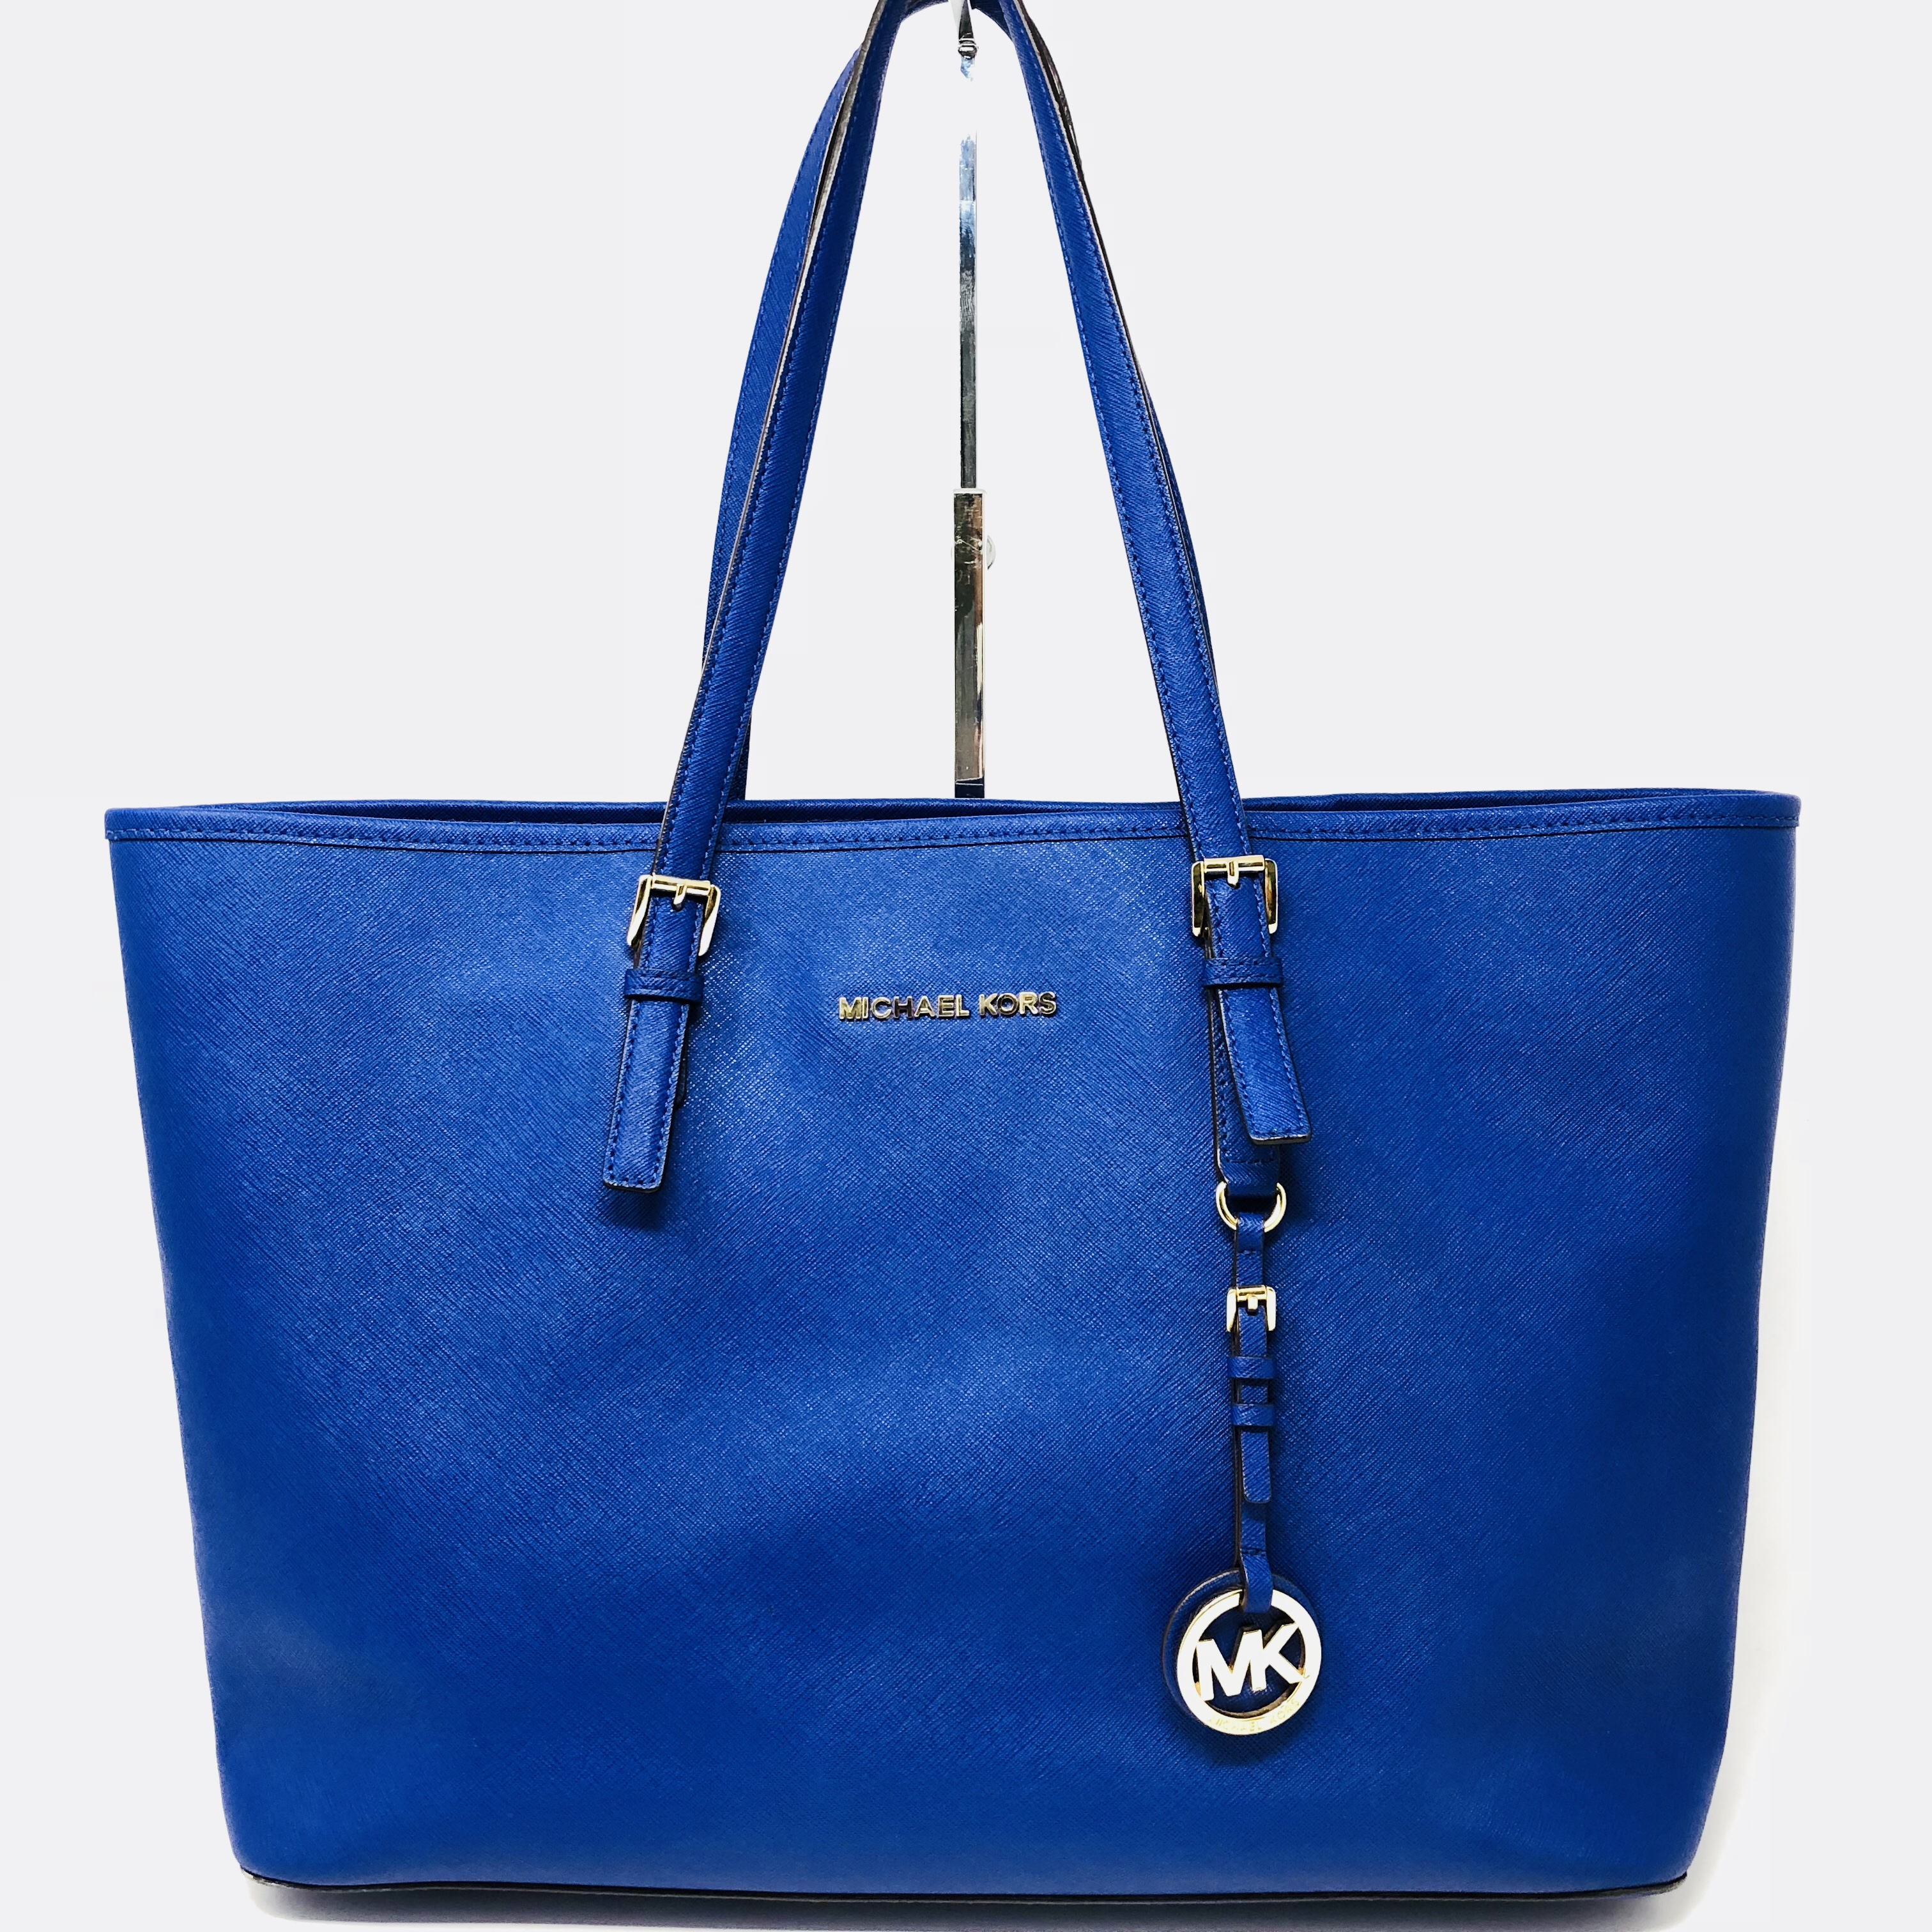 82dc1aa8cf6a @itshadrian. last year. Chino Hills, United States. For your consideration,  this gorgeous rare Michael Kors Large Jet Set tote ...